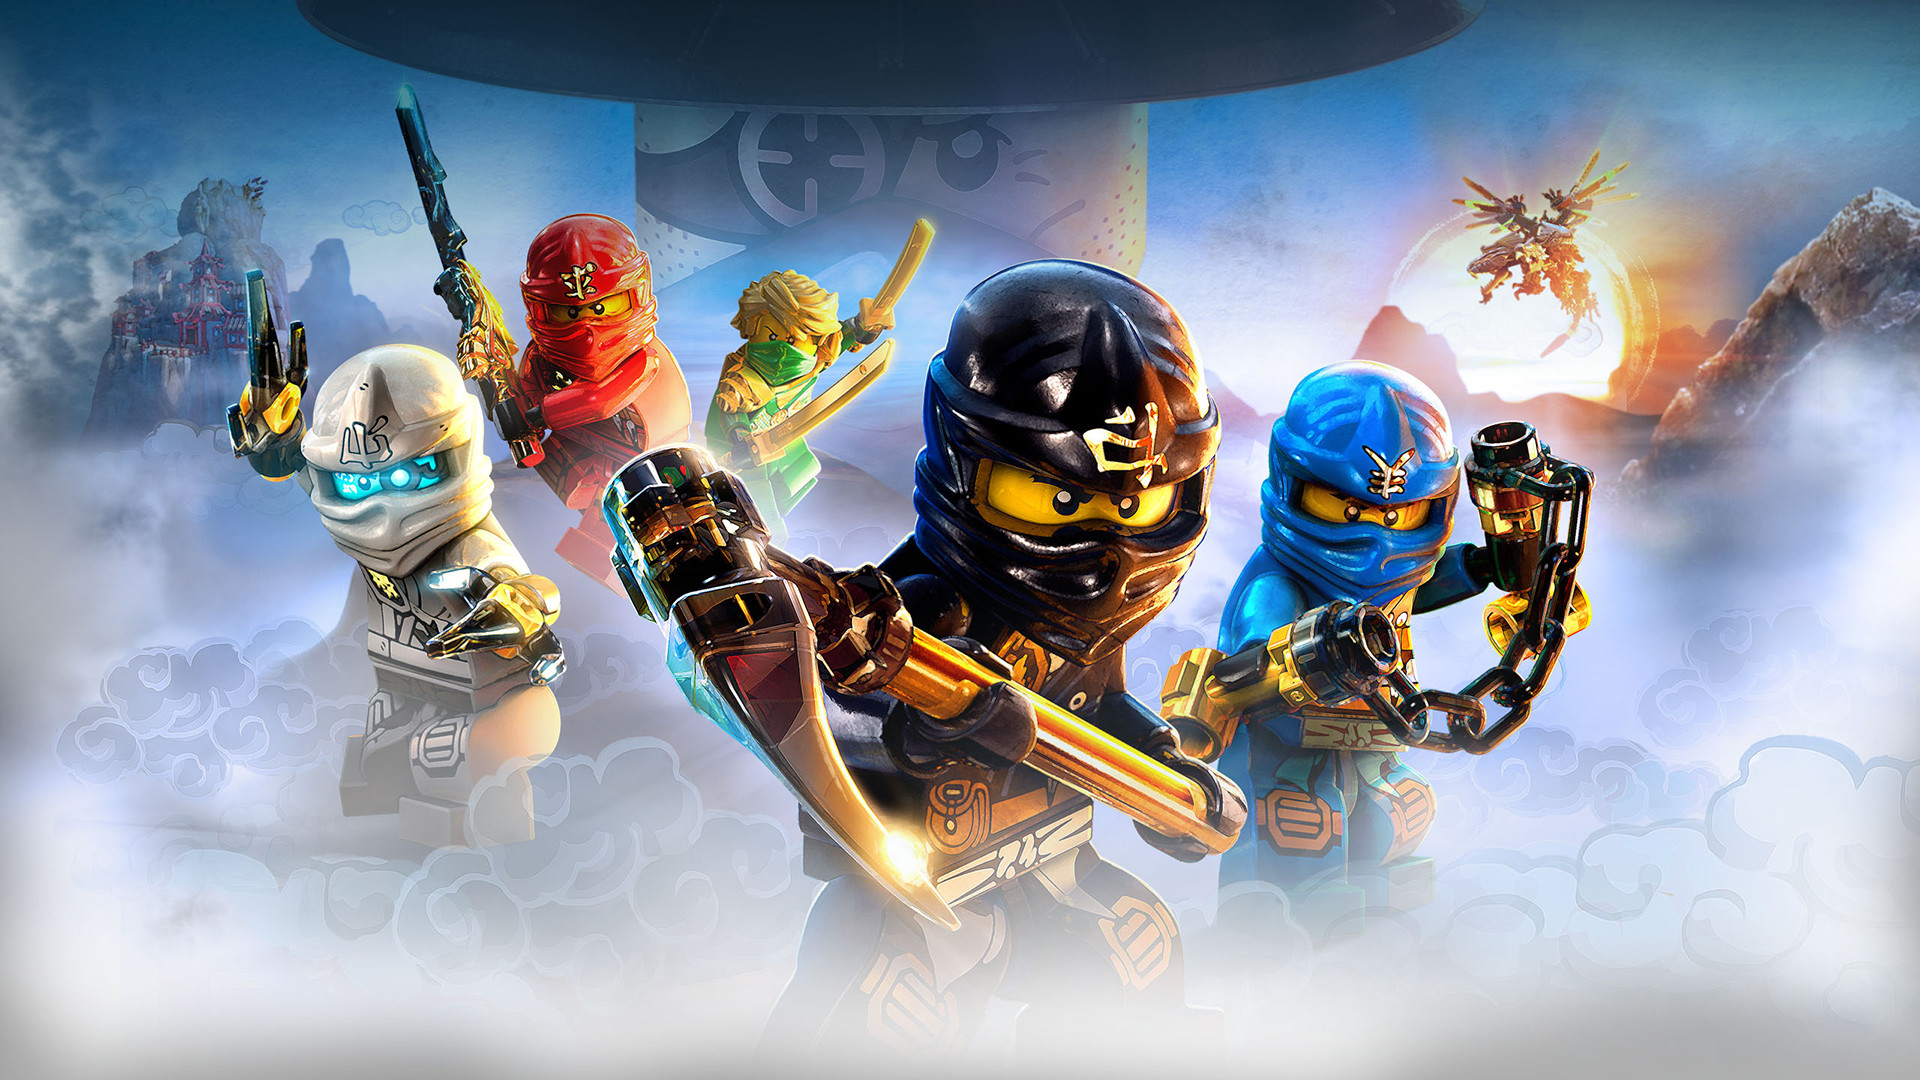 Ninjago wallpapers 73 images 1920x1080 the lego ninjago movie 2017 wallpapers voltagebd Image collections